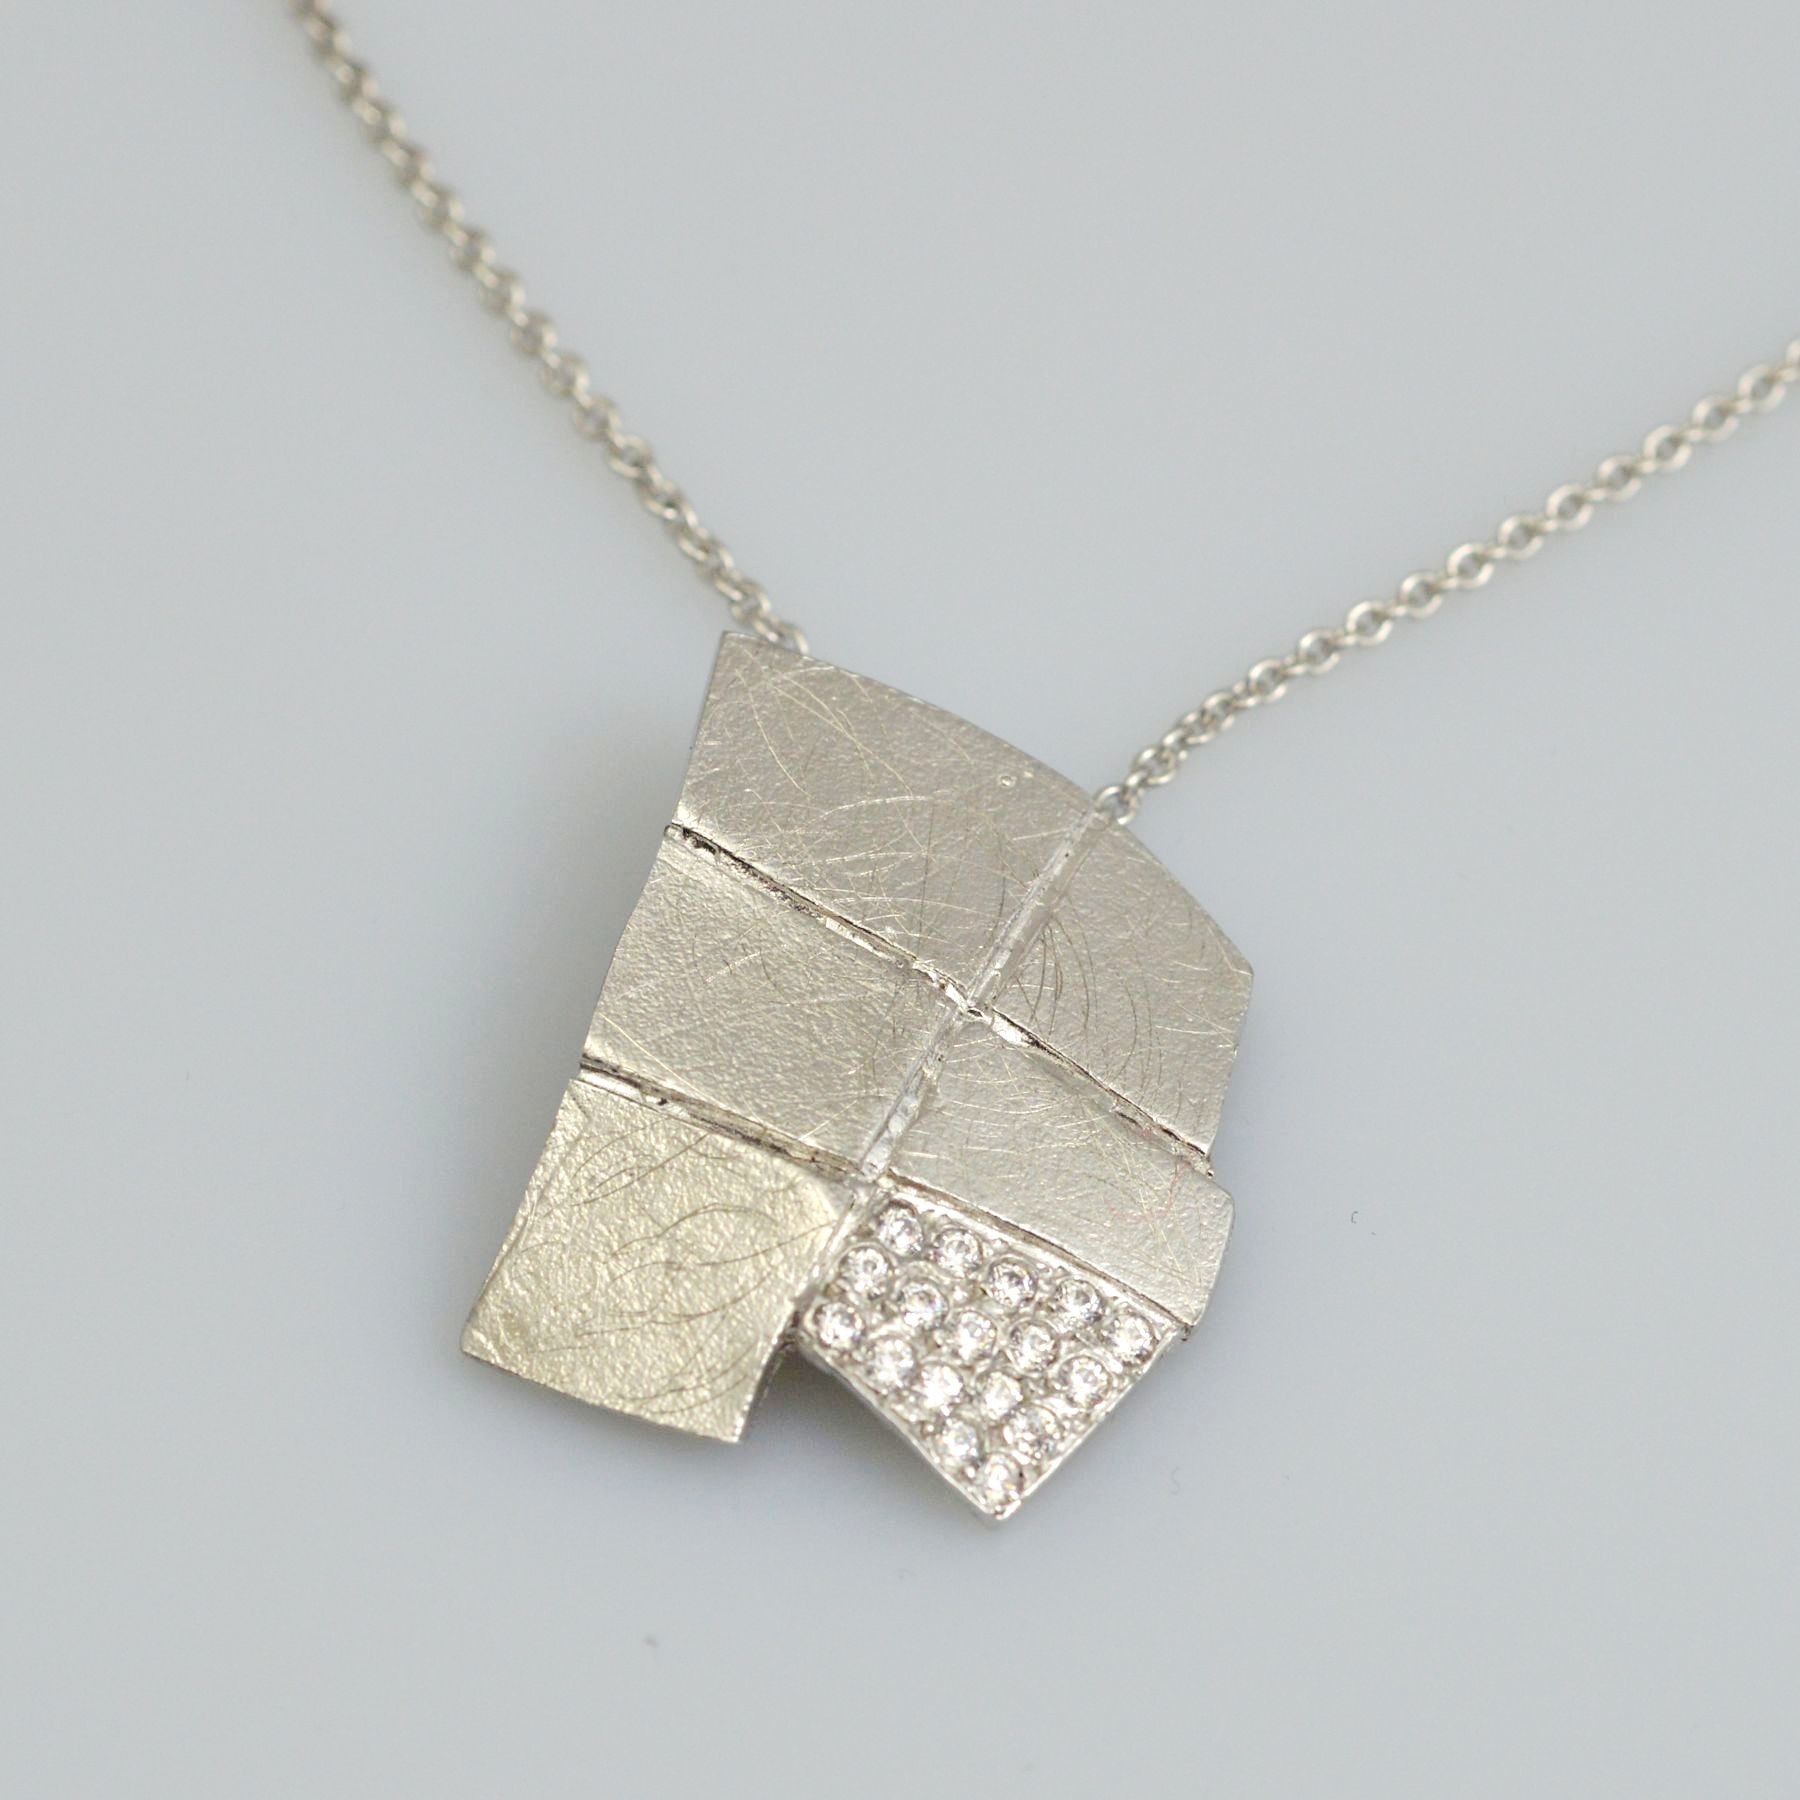 Silver pendant 925 rhodium plated with synthetic stones